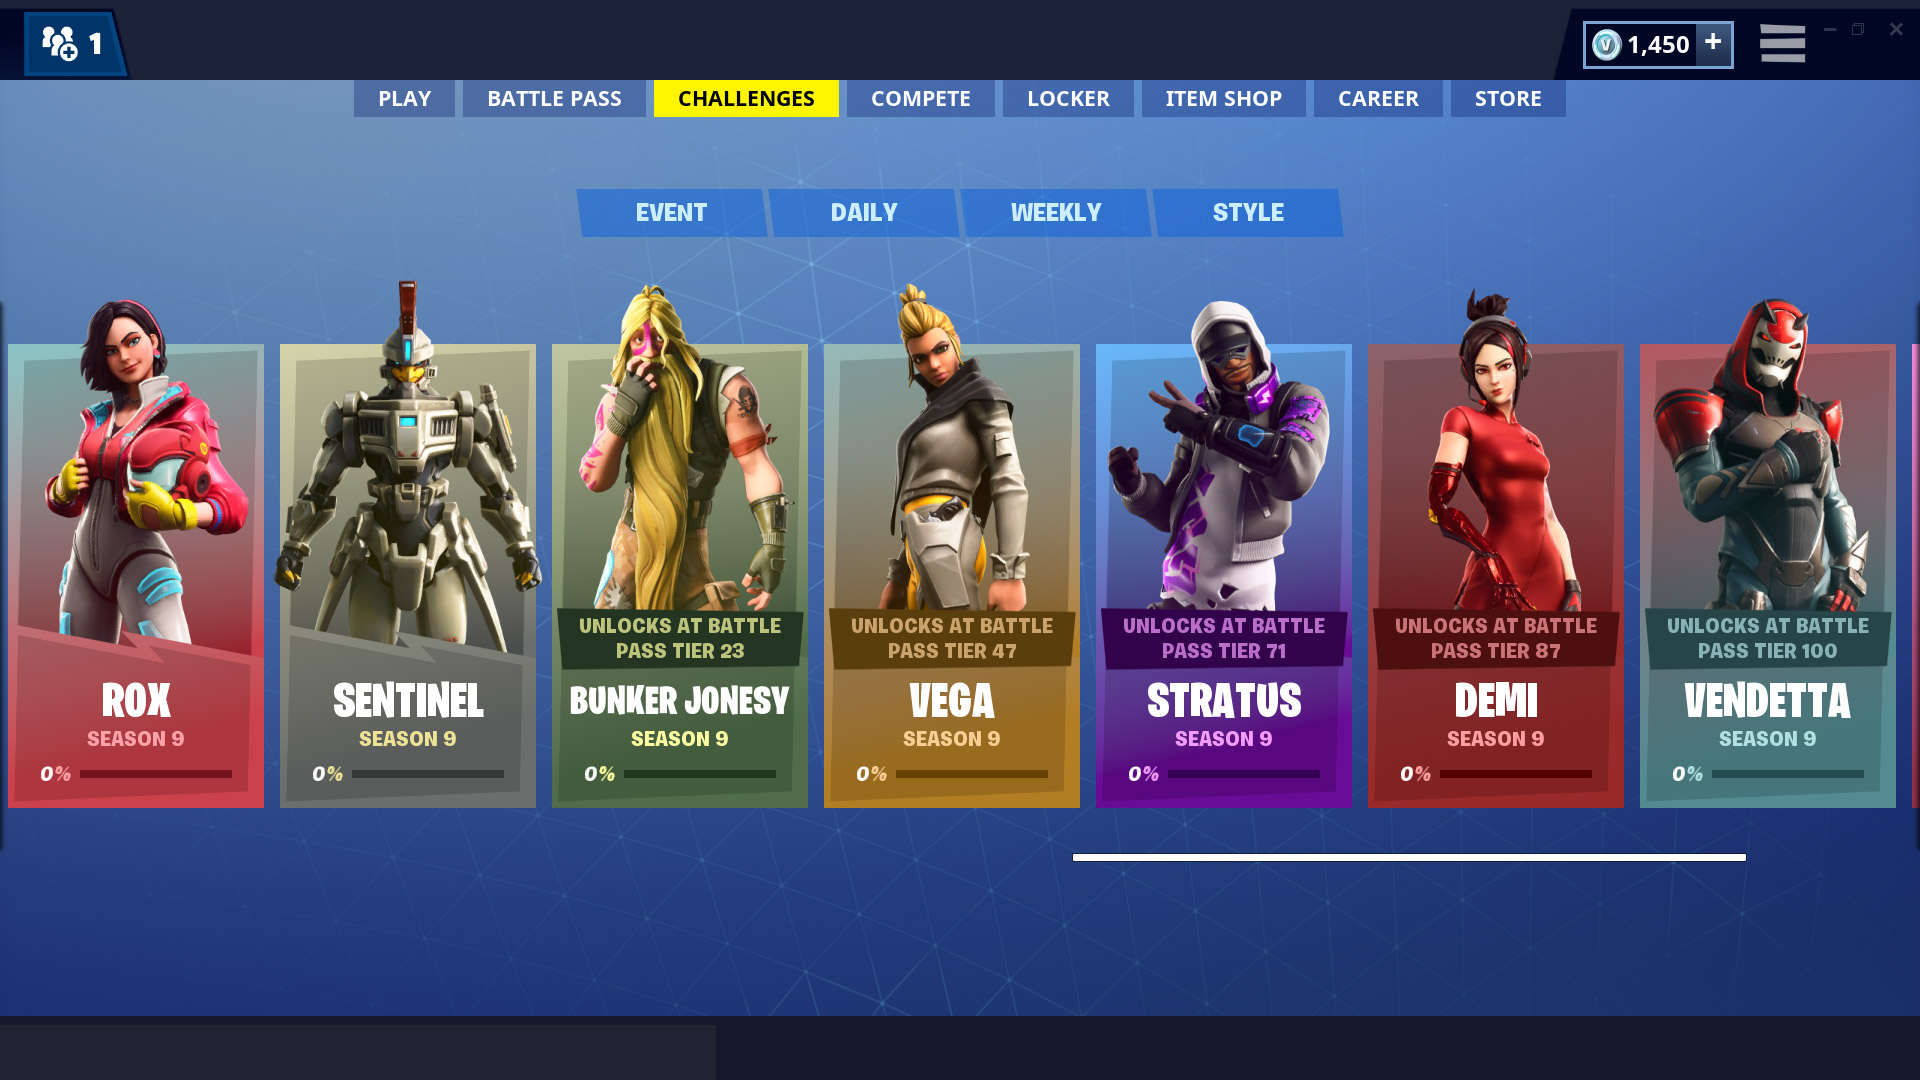 Fortnite Cape fortnite season 9 skins challenges guide - all cosmetic